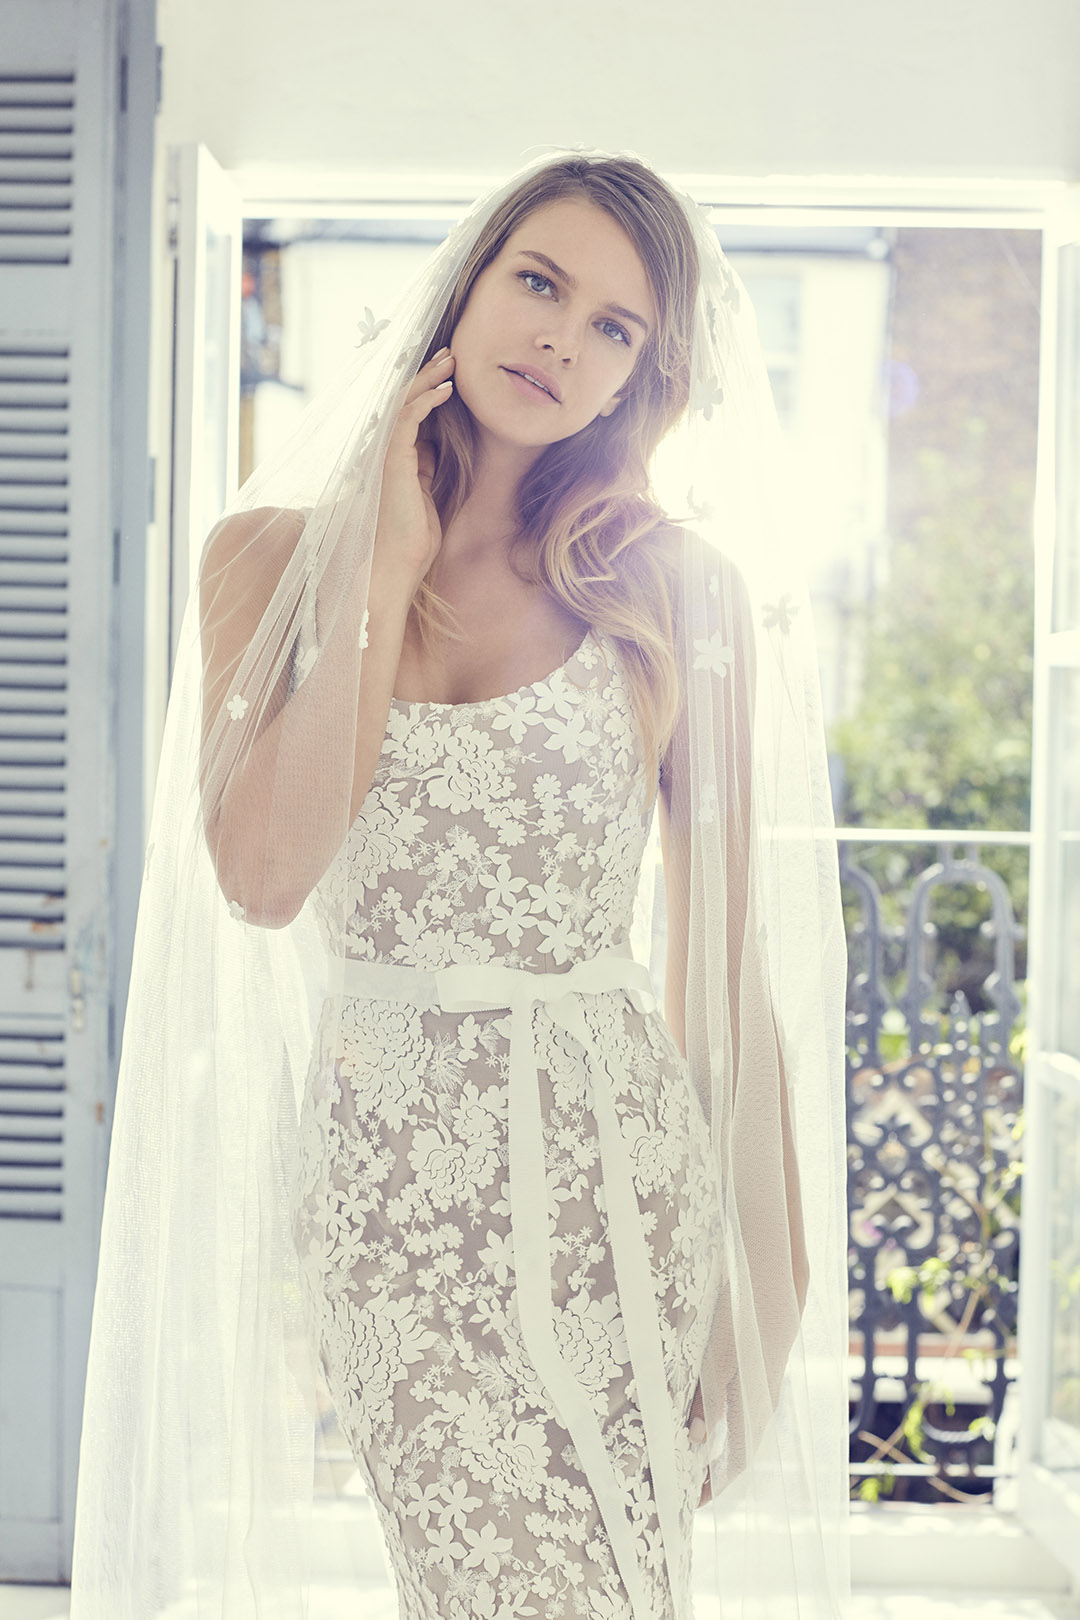 daisy2-wedding-dresses-uk-suzanne-neville-collection-hd-2019